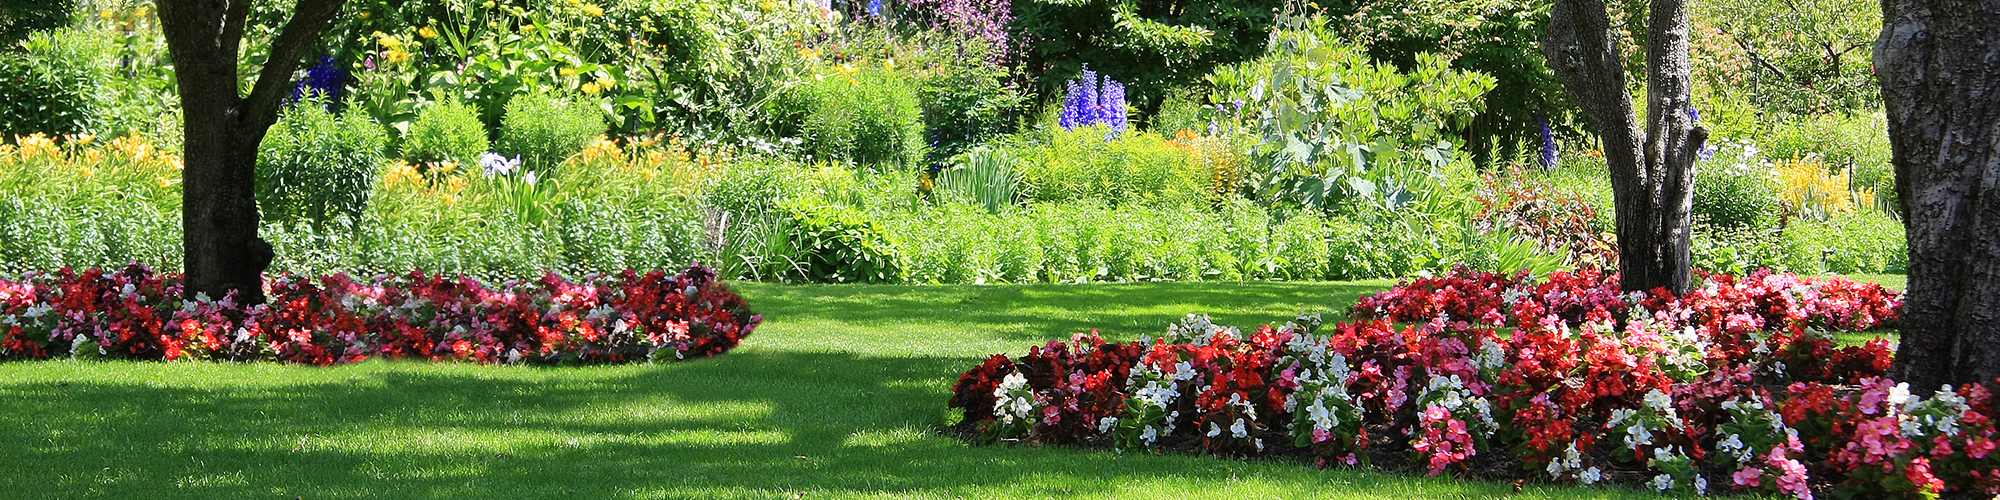 Spring Landscaping commercial landscaping design spring house pa | passionate about